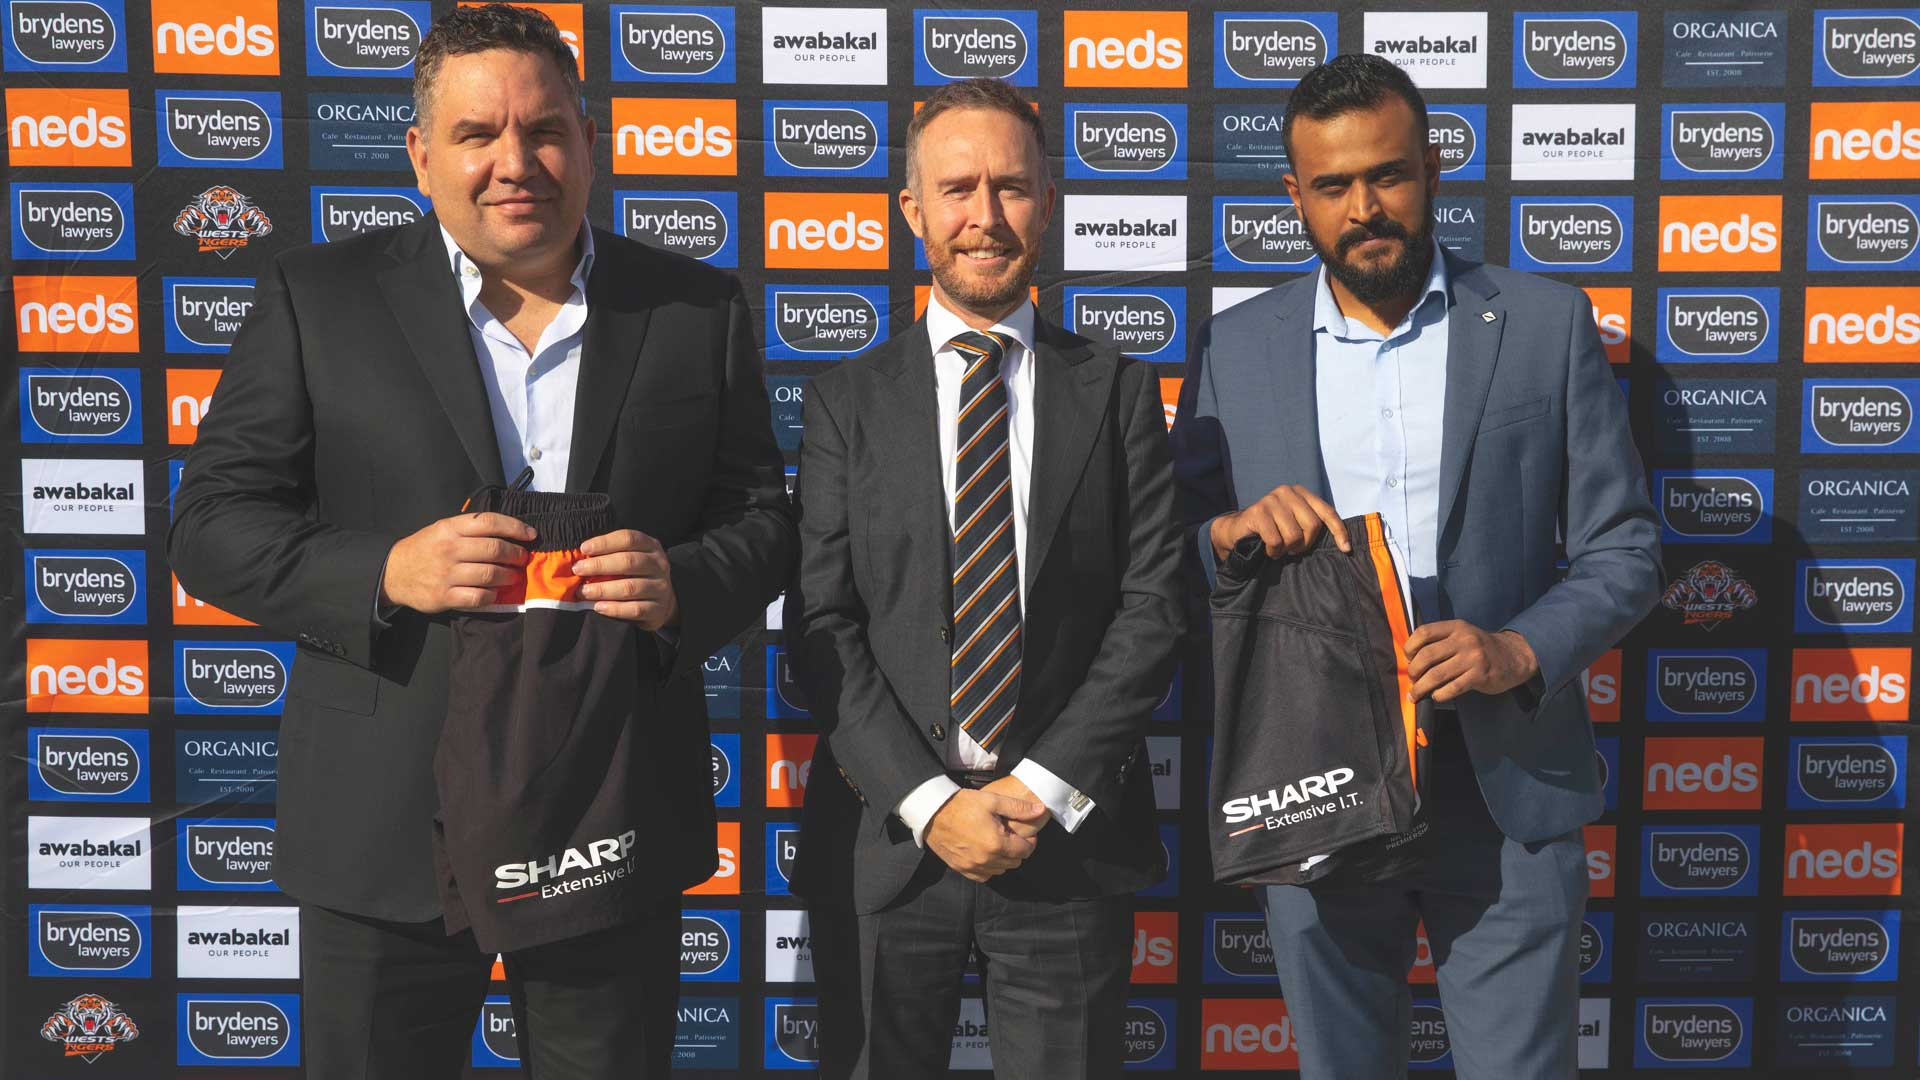 Sharp Extensive IT partner with Wests Tigers